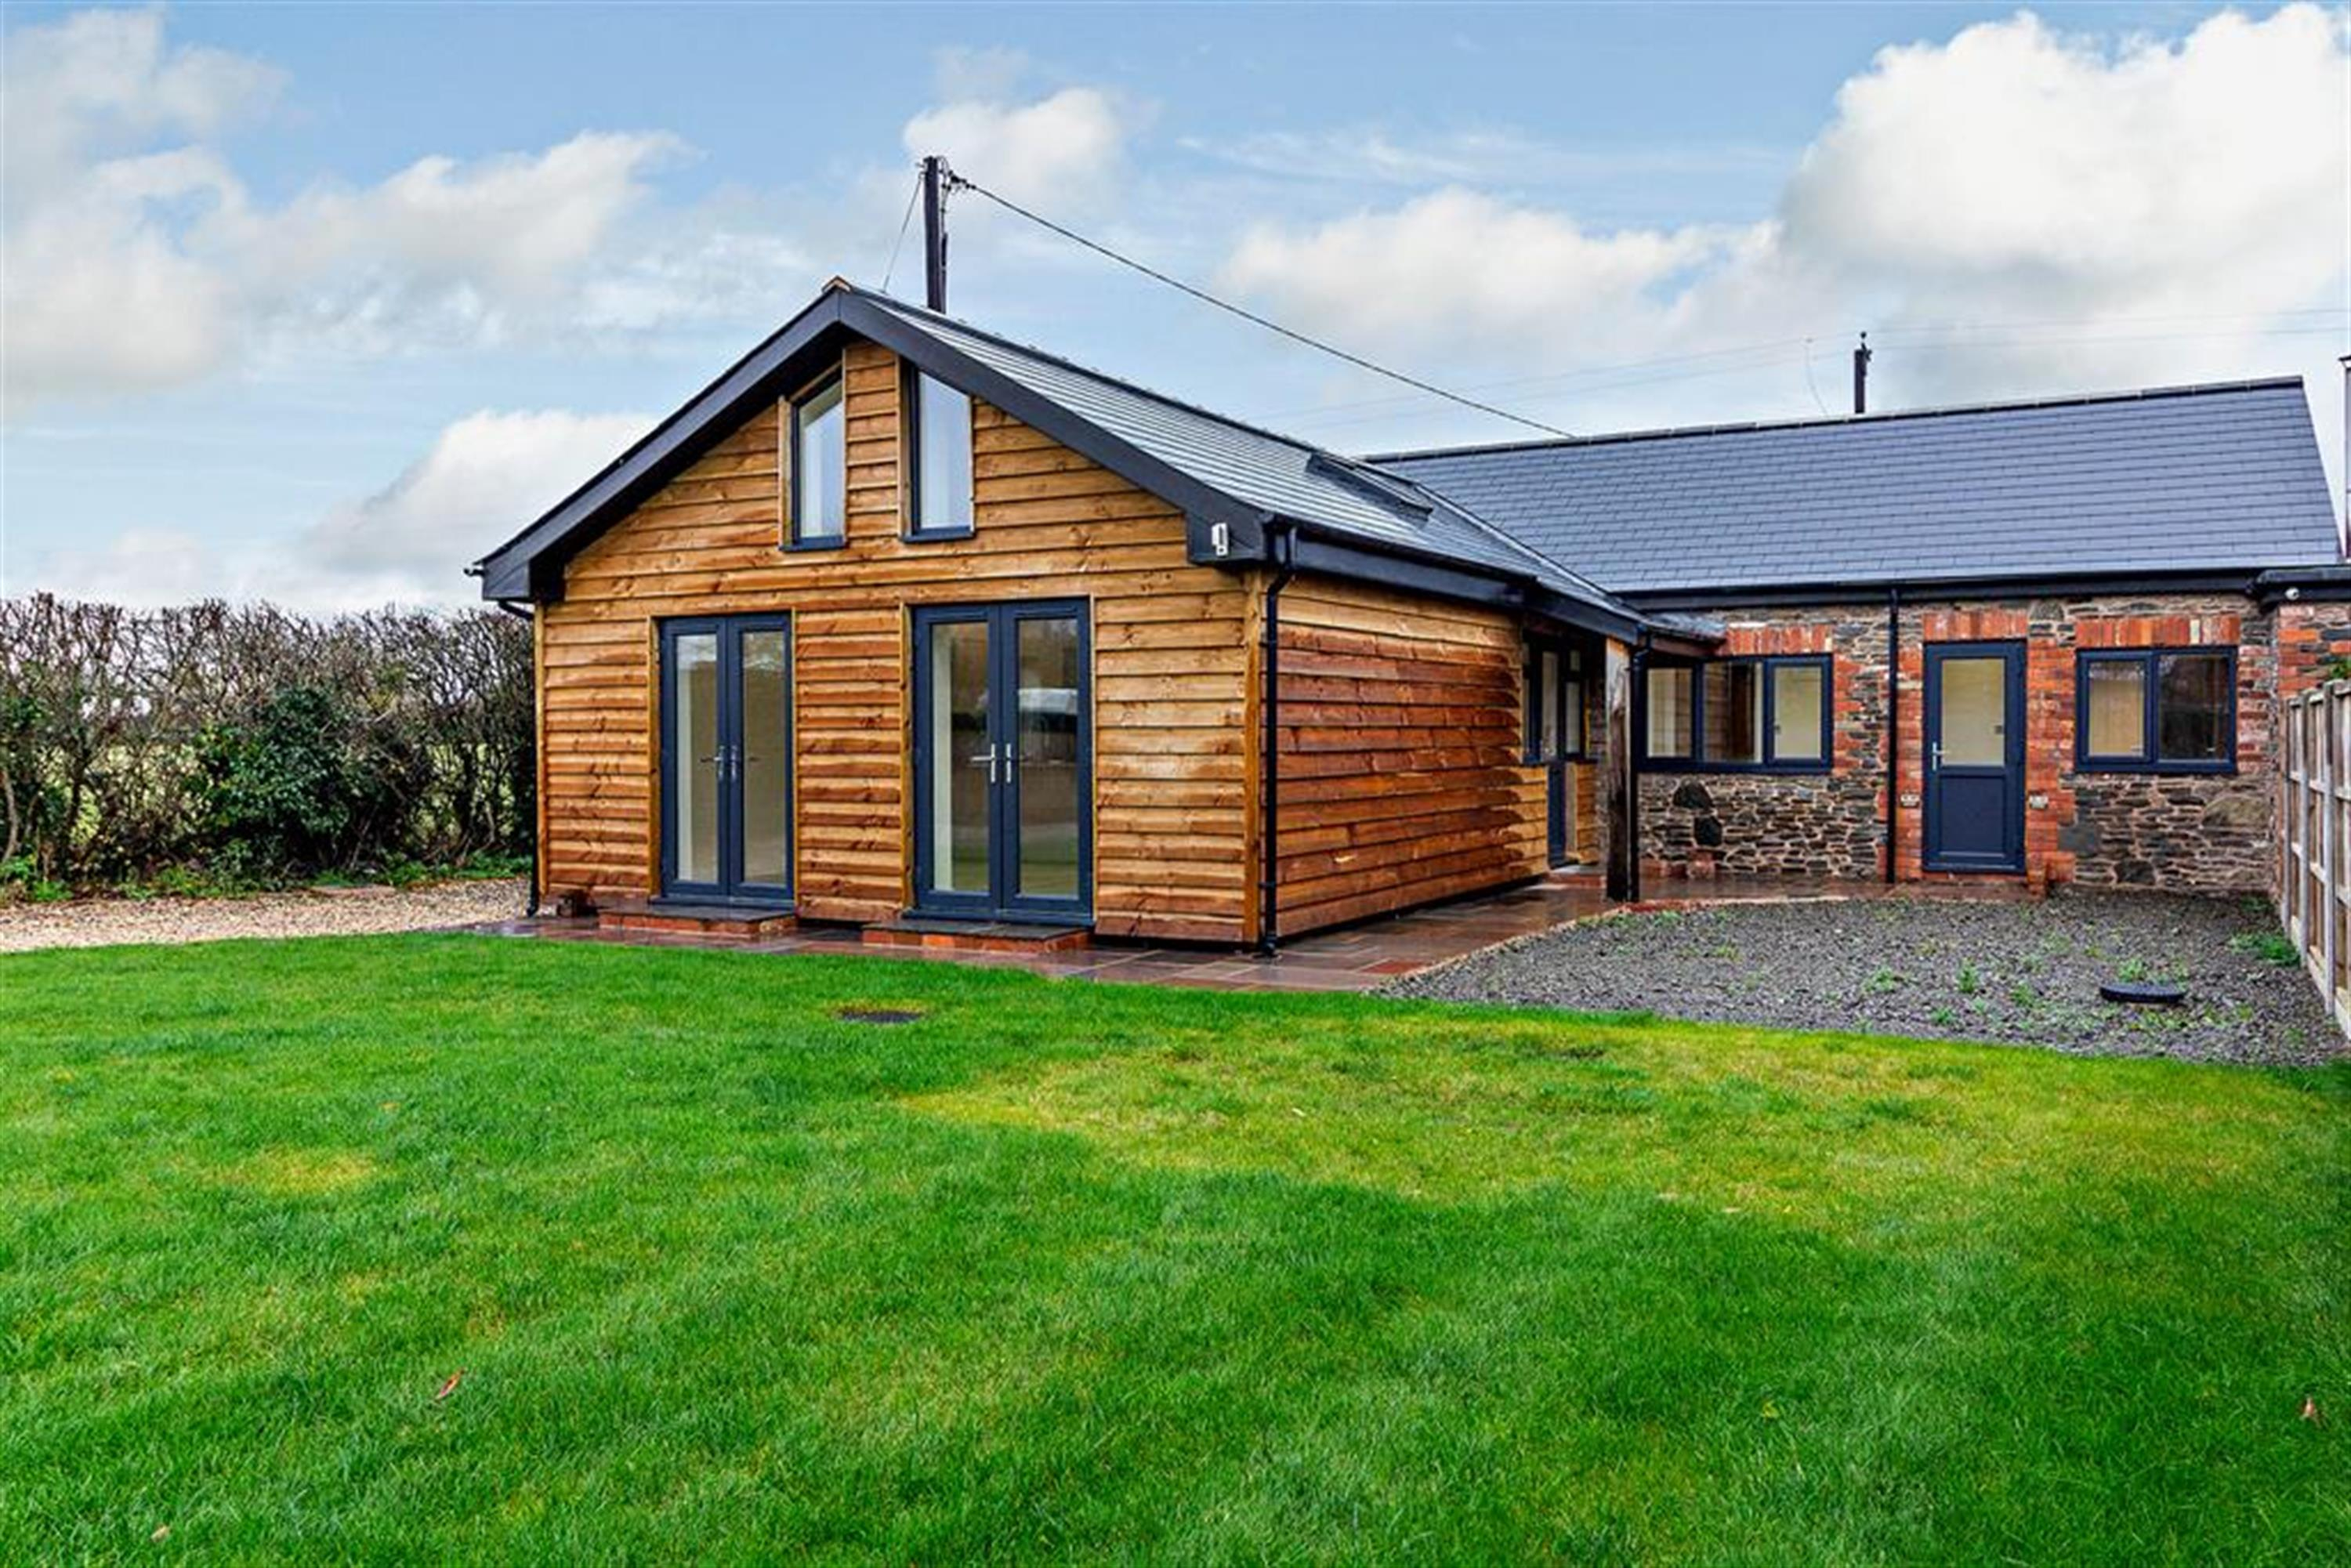 Apple Tree Lodge, Matchcroft, Eau Withington, Hereford, HR1 3NH